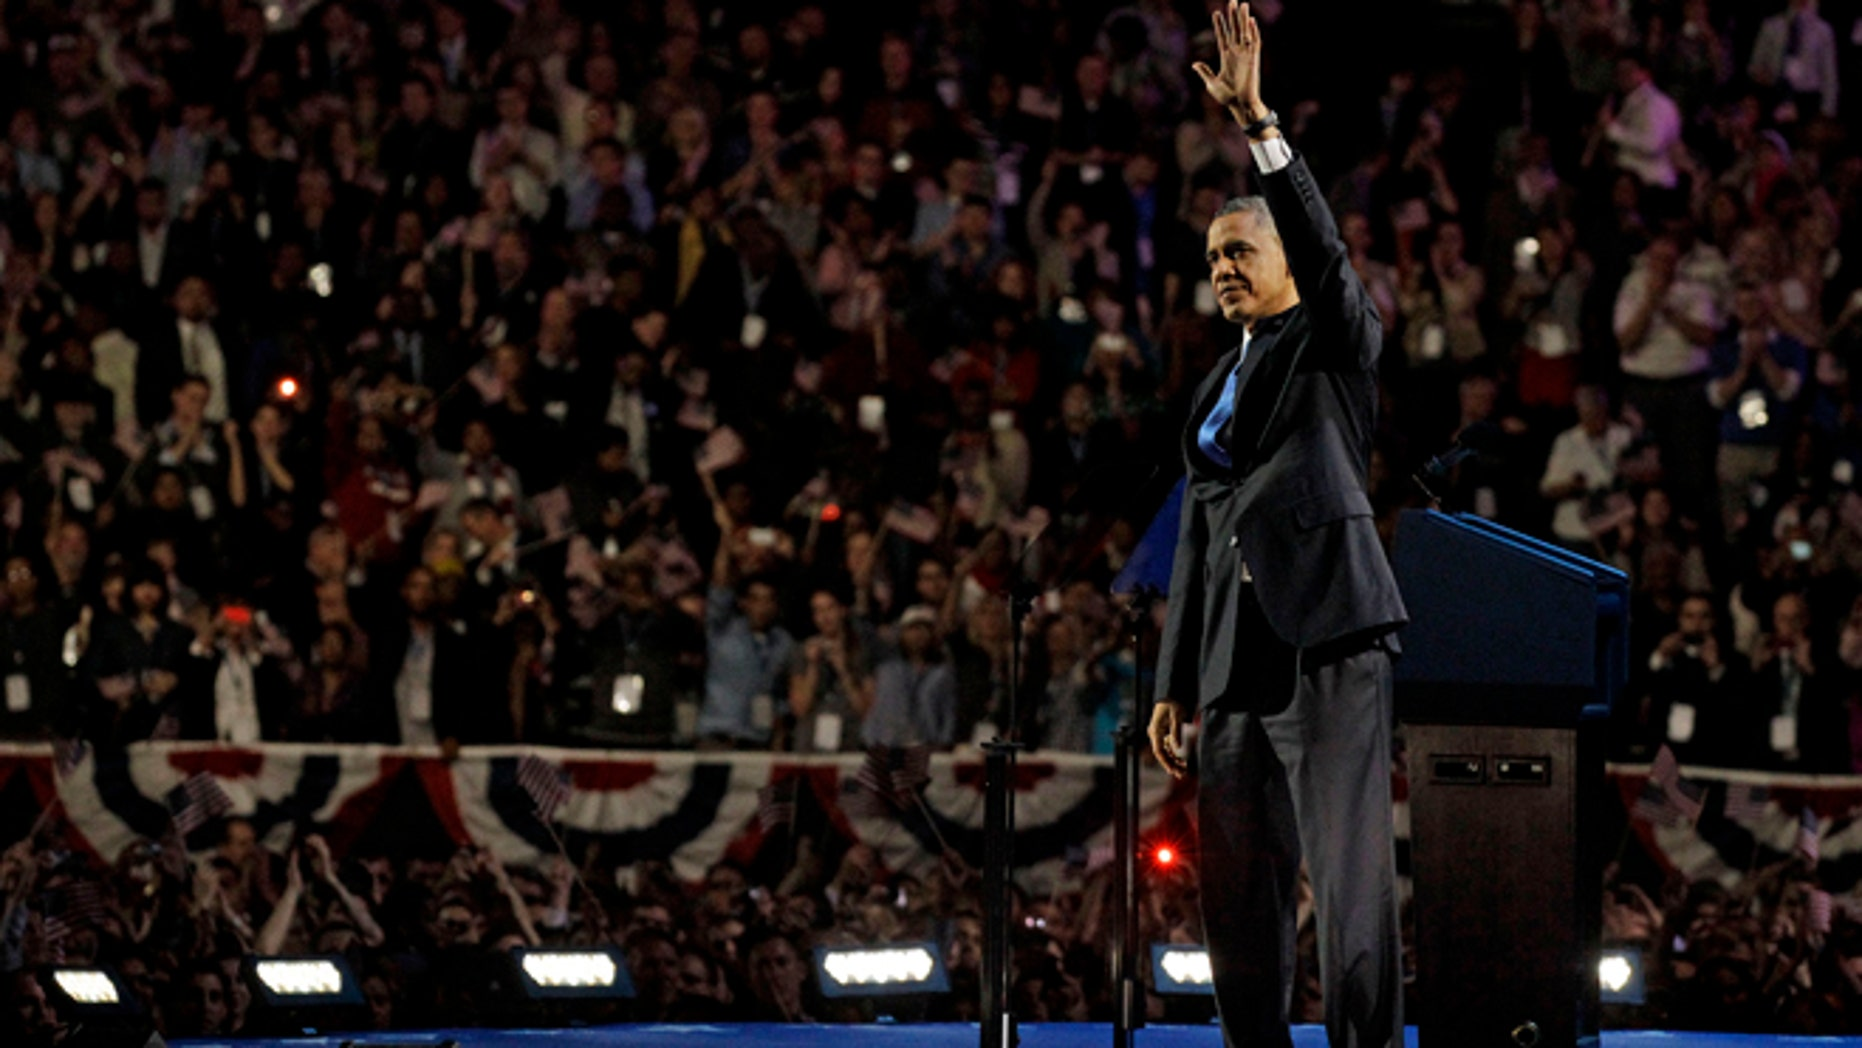 Nov. 7, 2012: President Barack Obama waves to the crowd at his election night party.